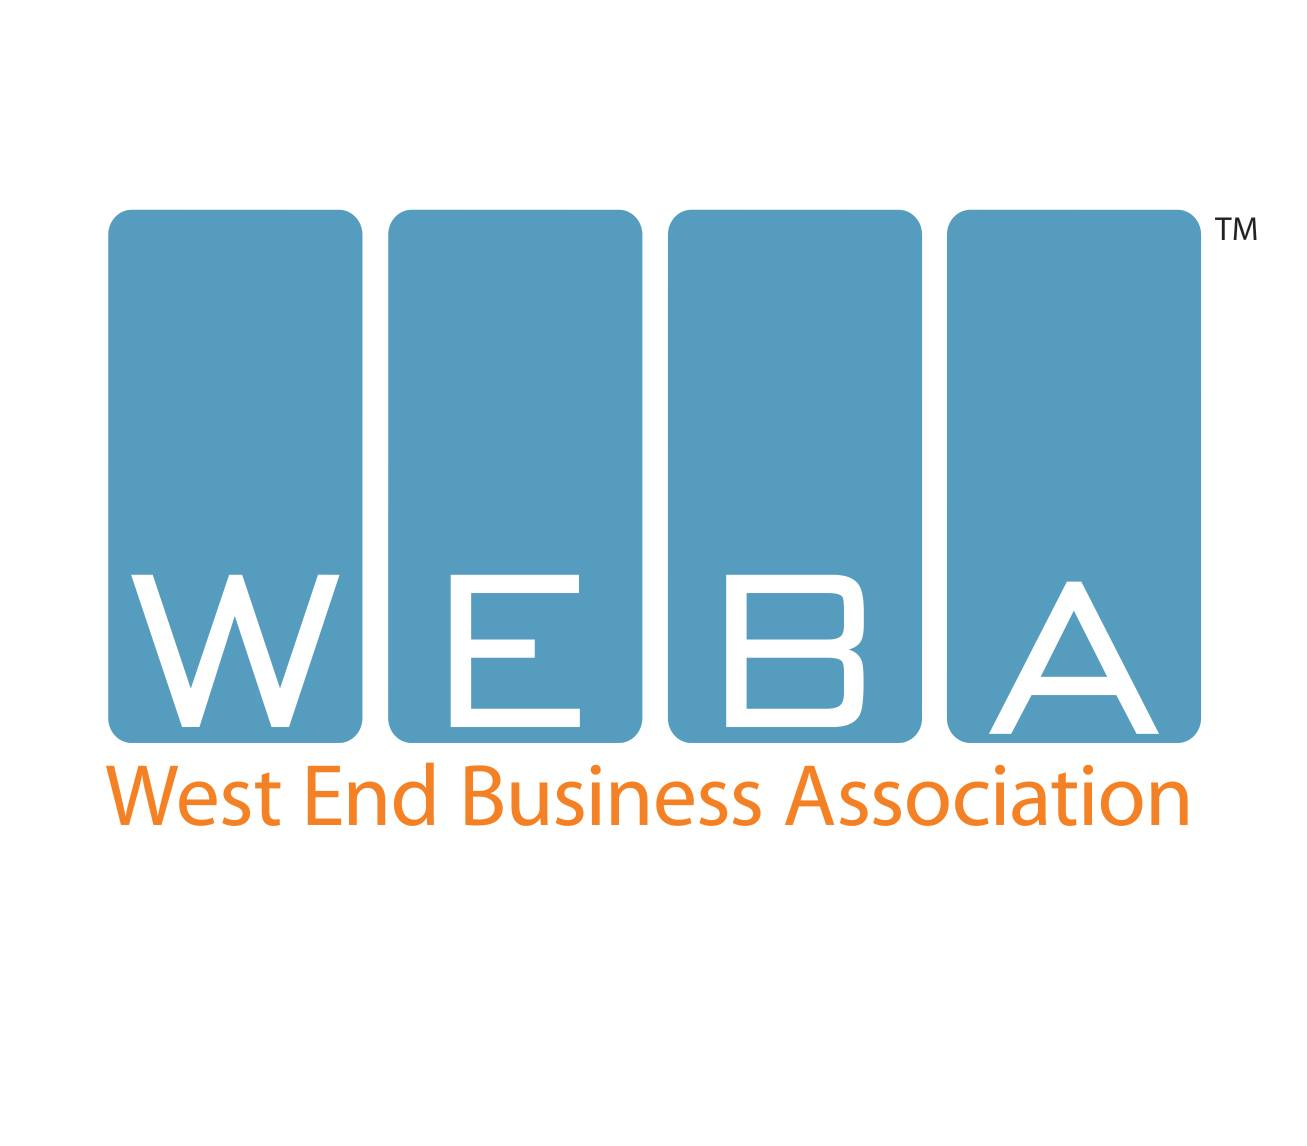 west end business association